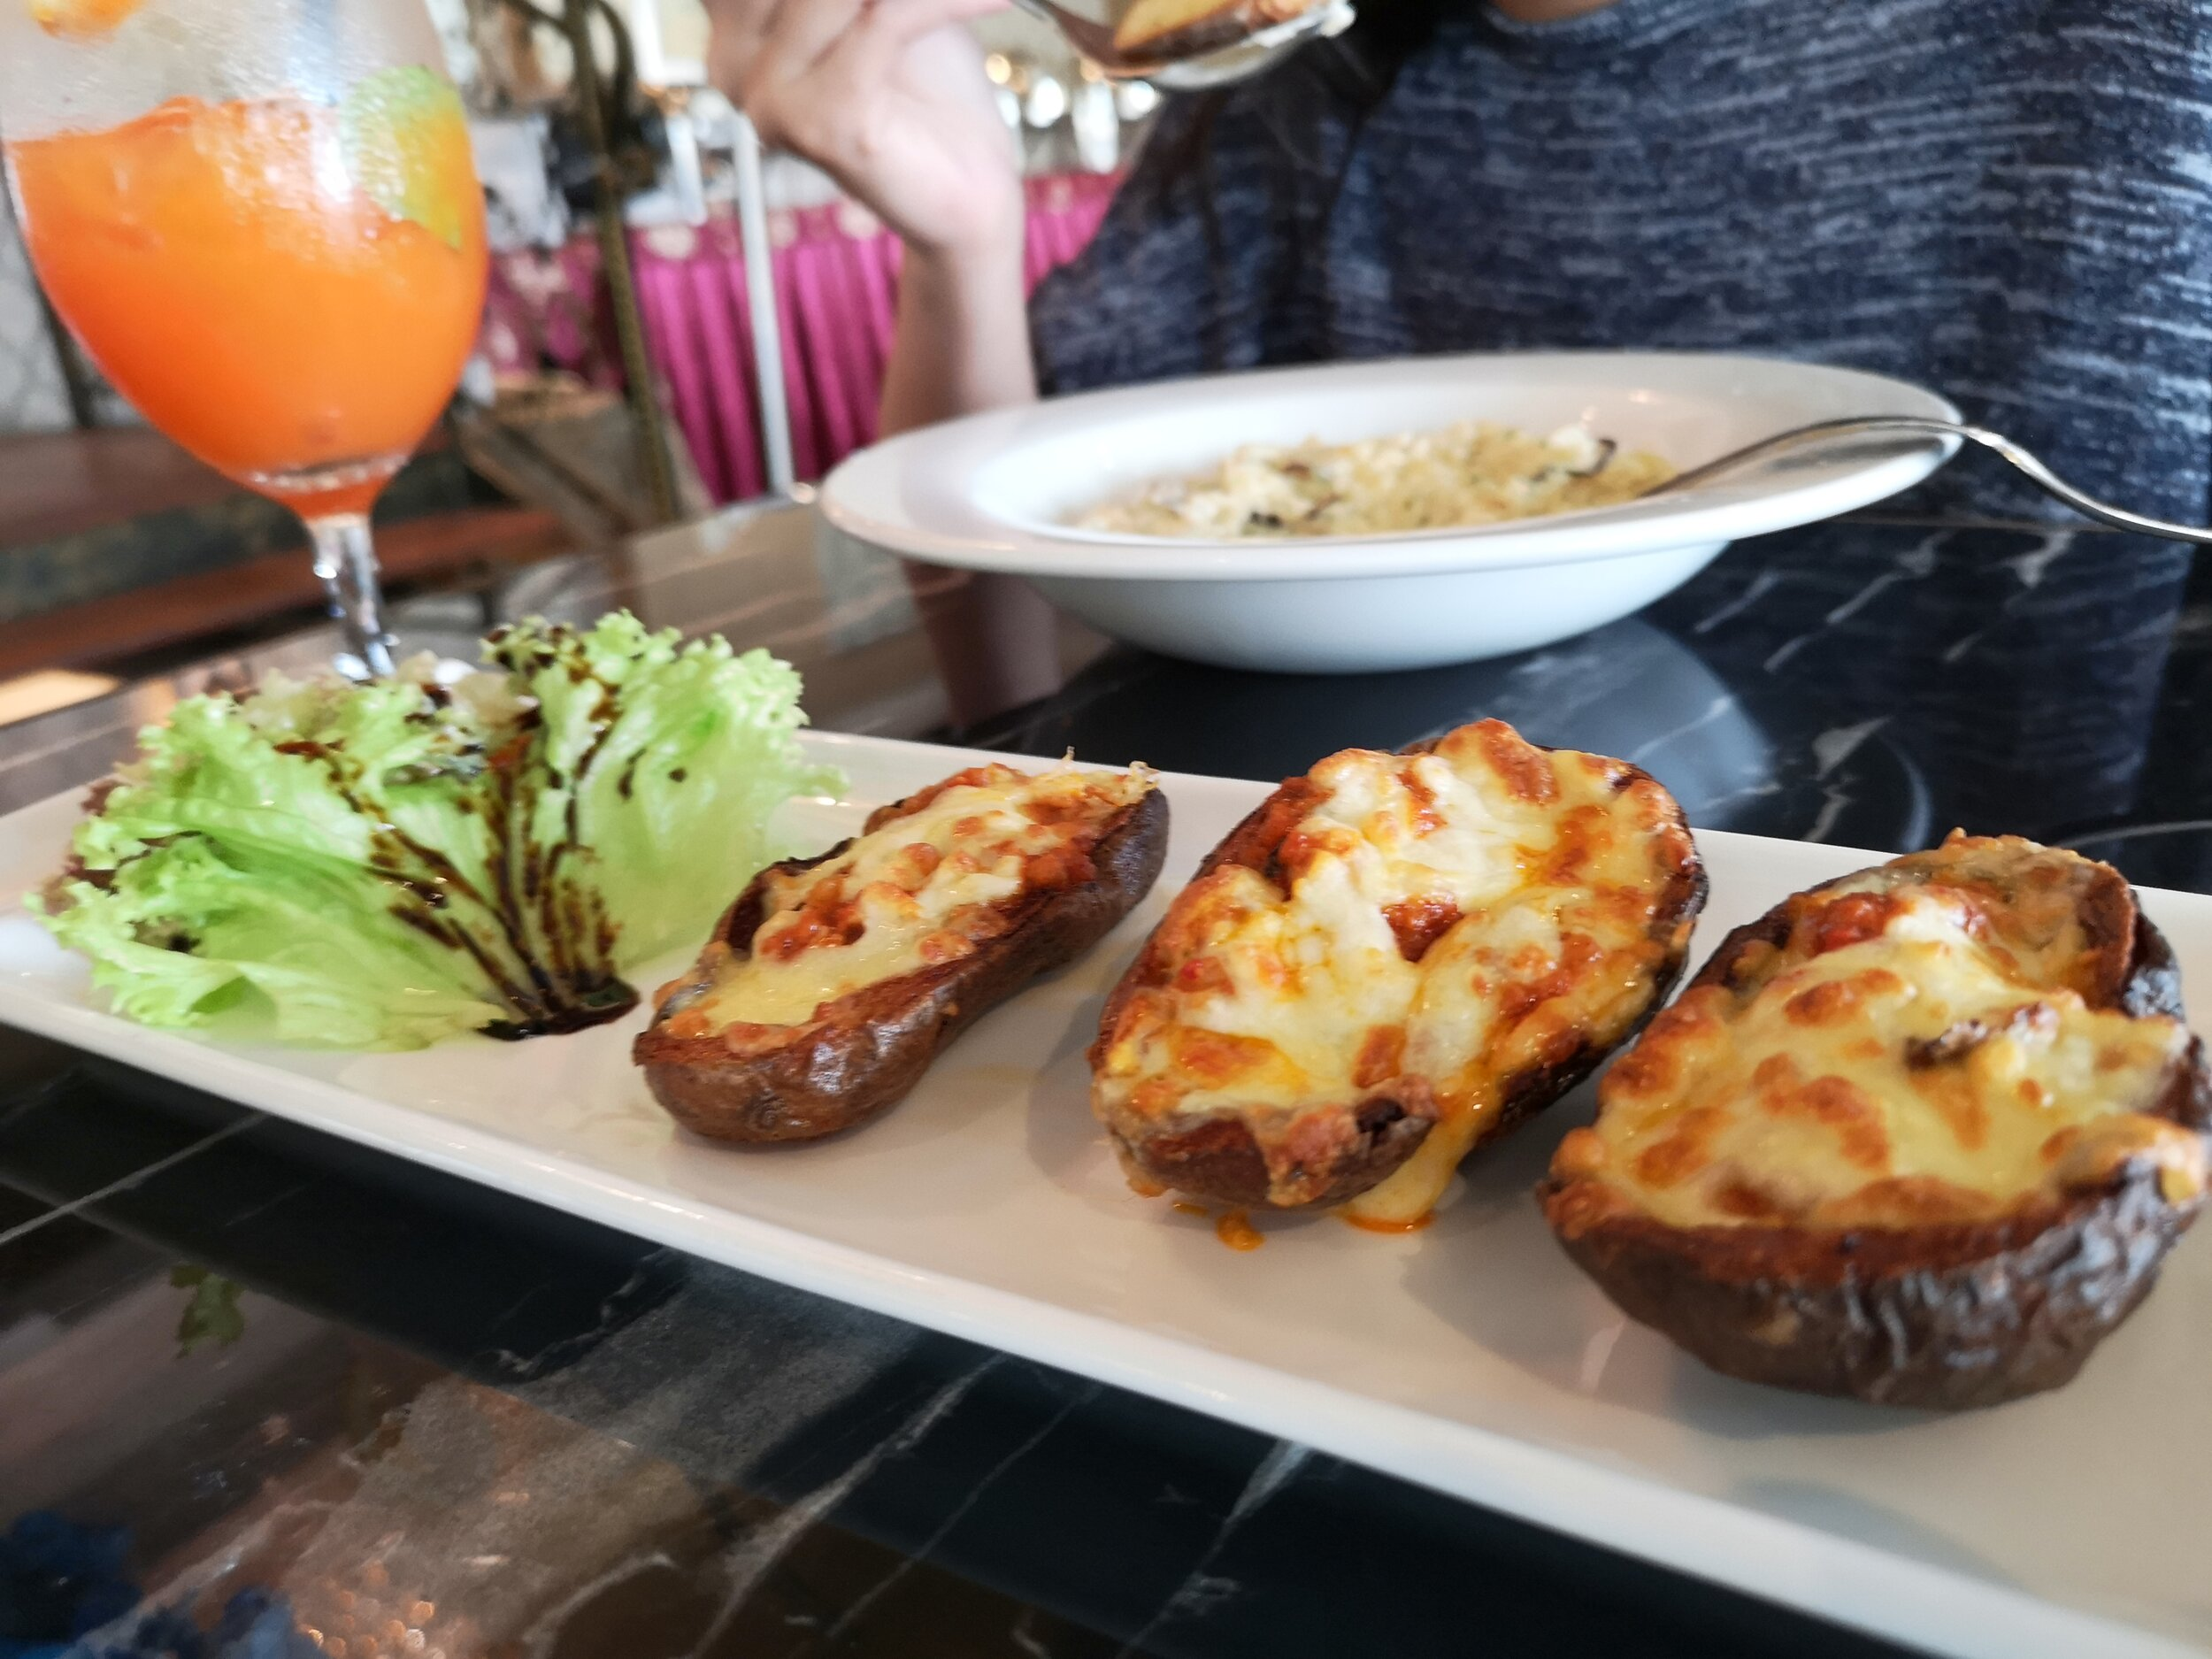 Baked Potato Skins with Chicken